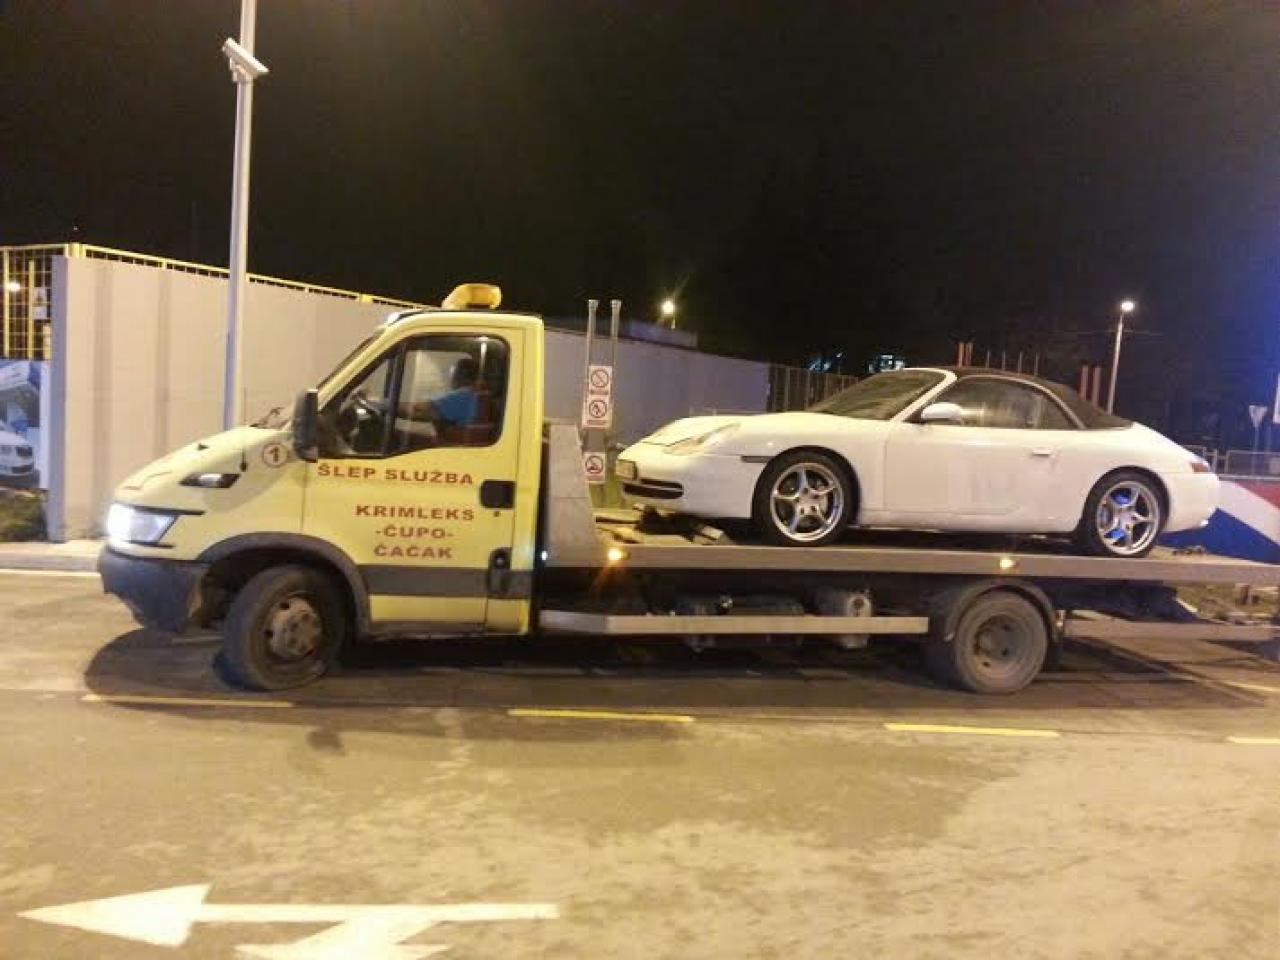 KRIMLEKS CUPO DOO Towing services Cacak - Photo 2